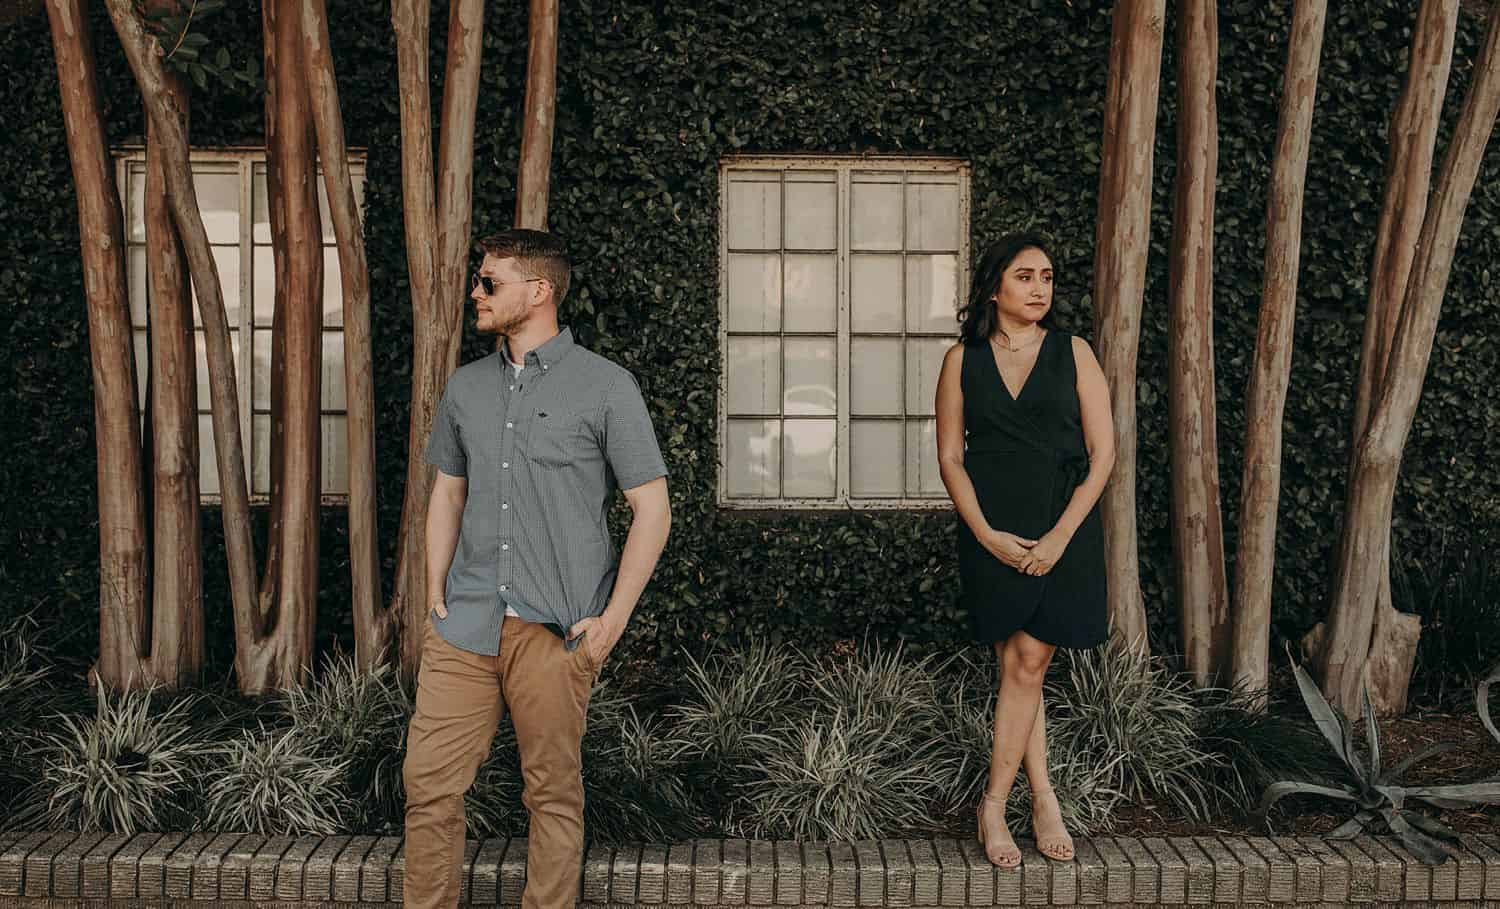 A tall man stands in front of a shady building looking to his right while a petite woman stands on a ledge above him looking to her left